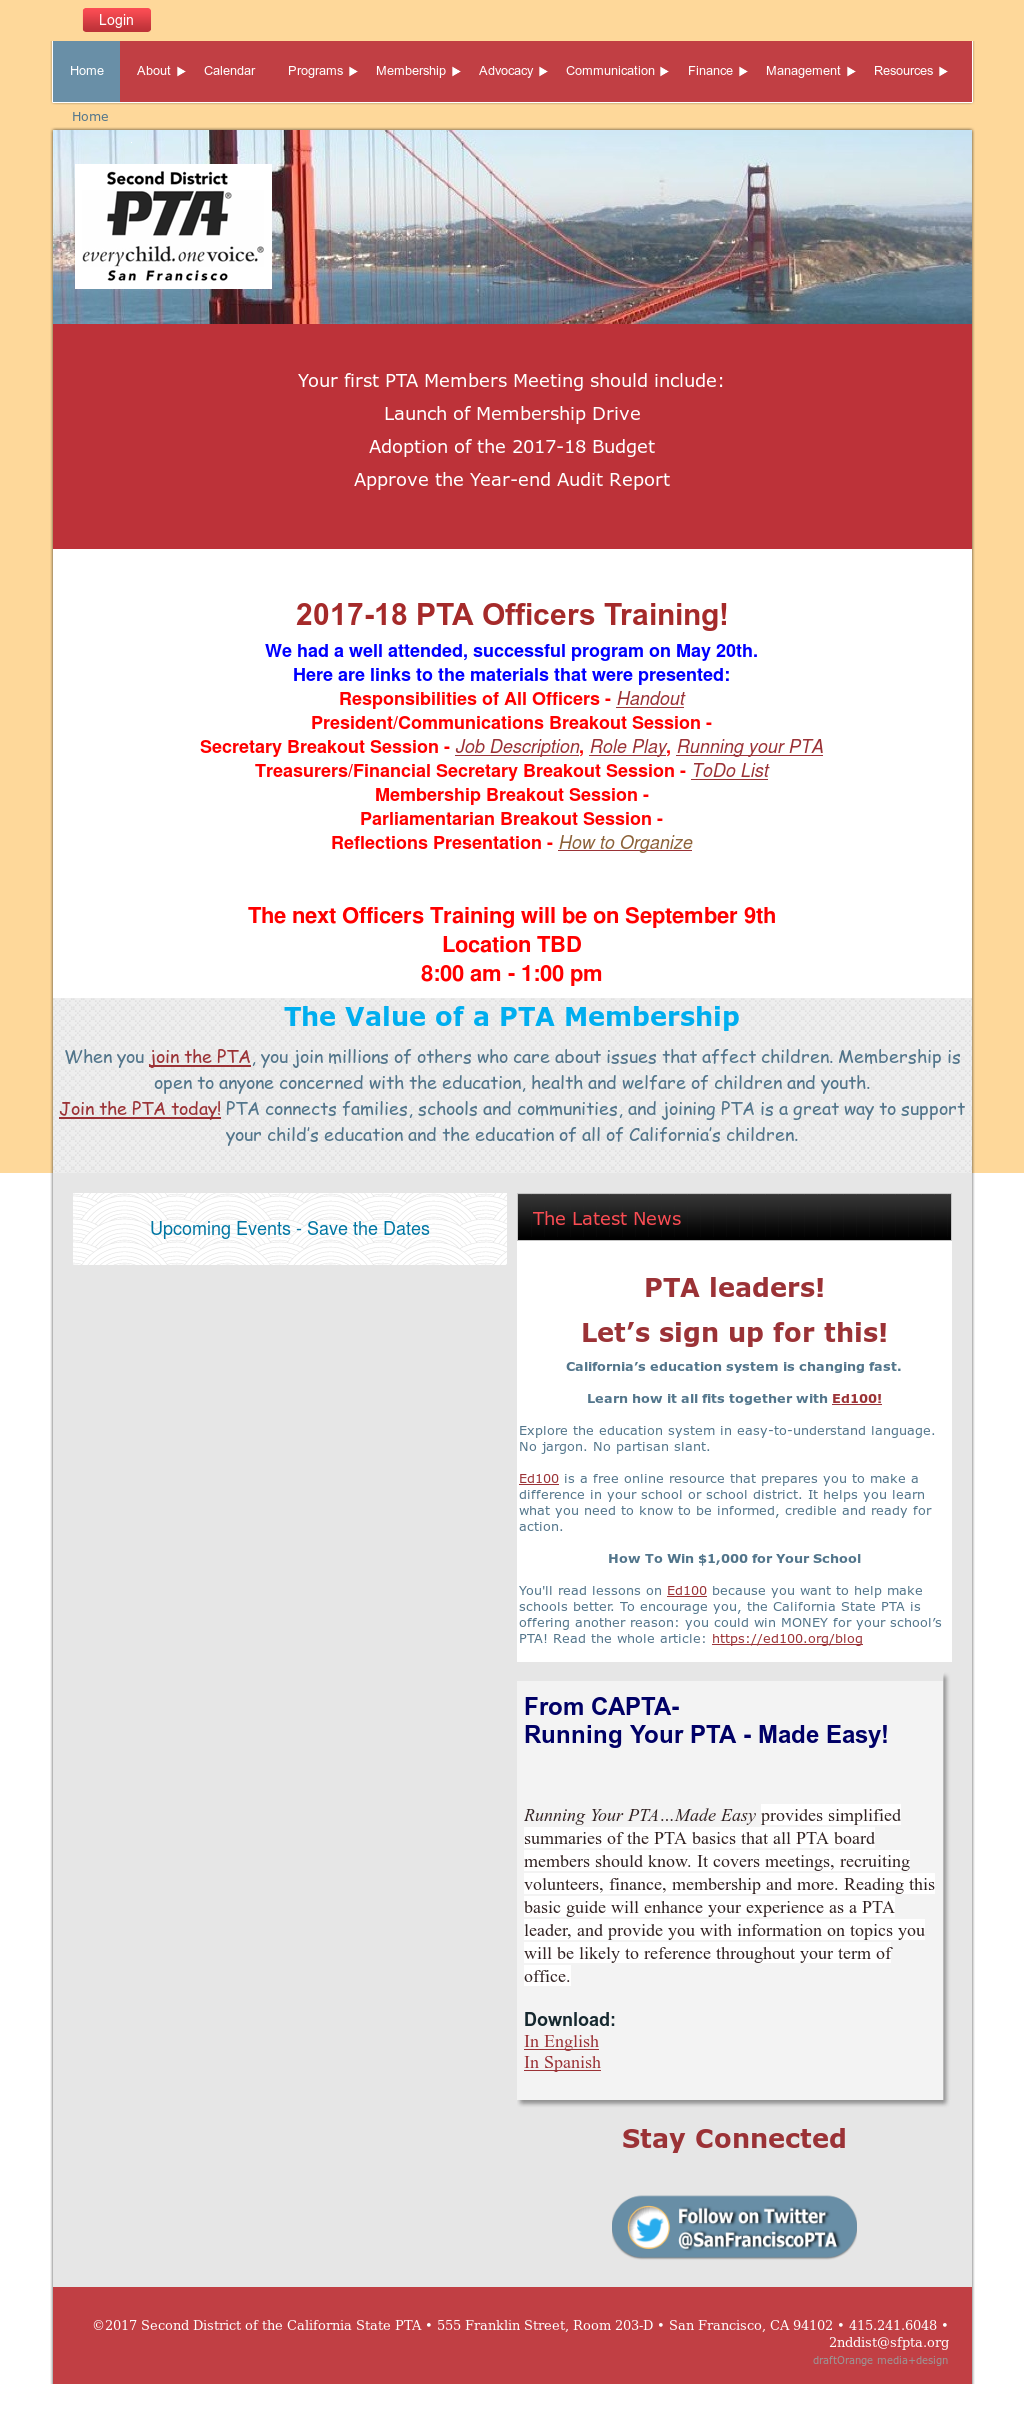 Second District Pta Competitors, Revenue and Employees